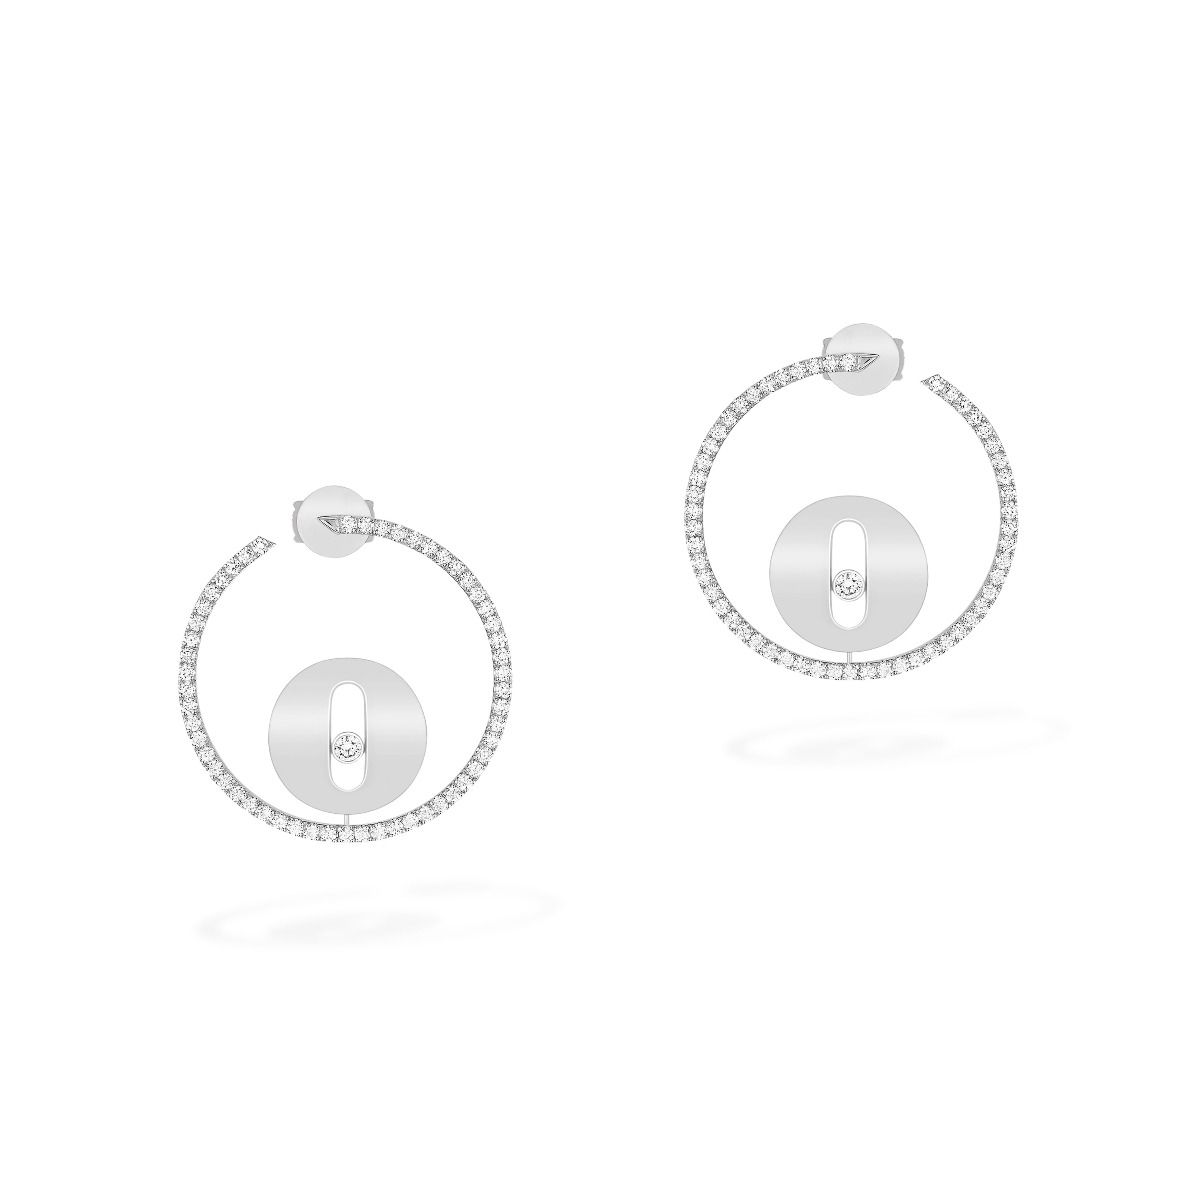 Créoles Lucky Move Pm Earrings - White Gold